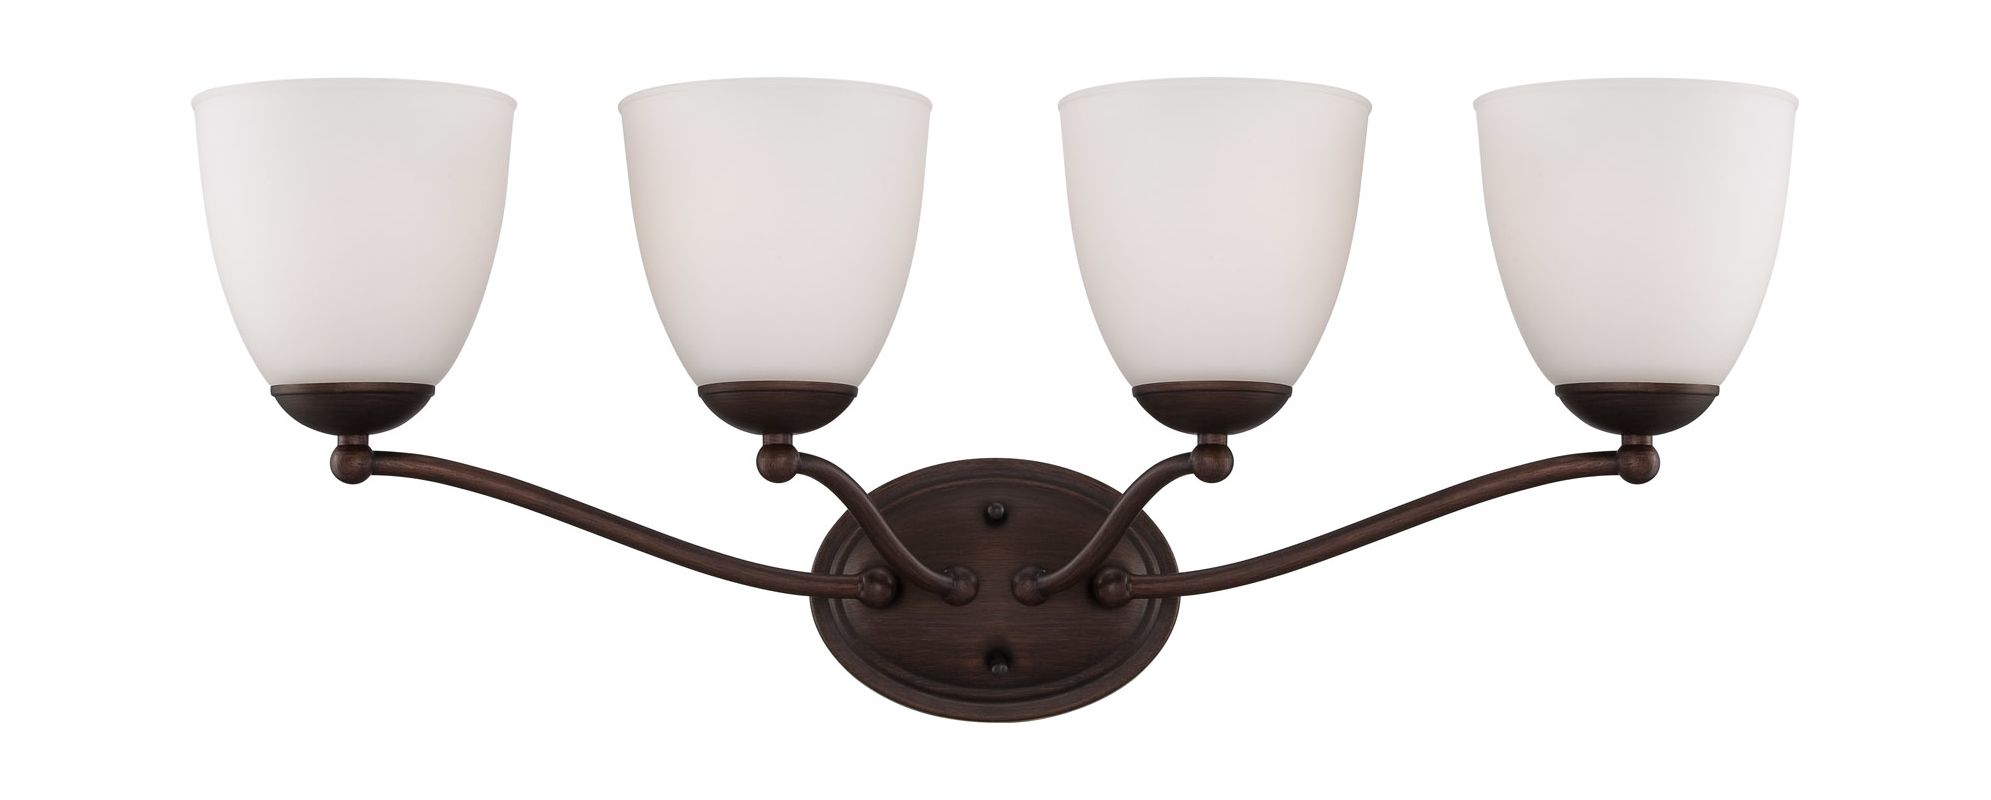 Nuvo Lighting 60/5154 Patton ES Four-Light Bathroom Fixture with